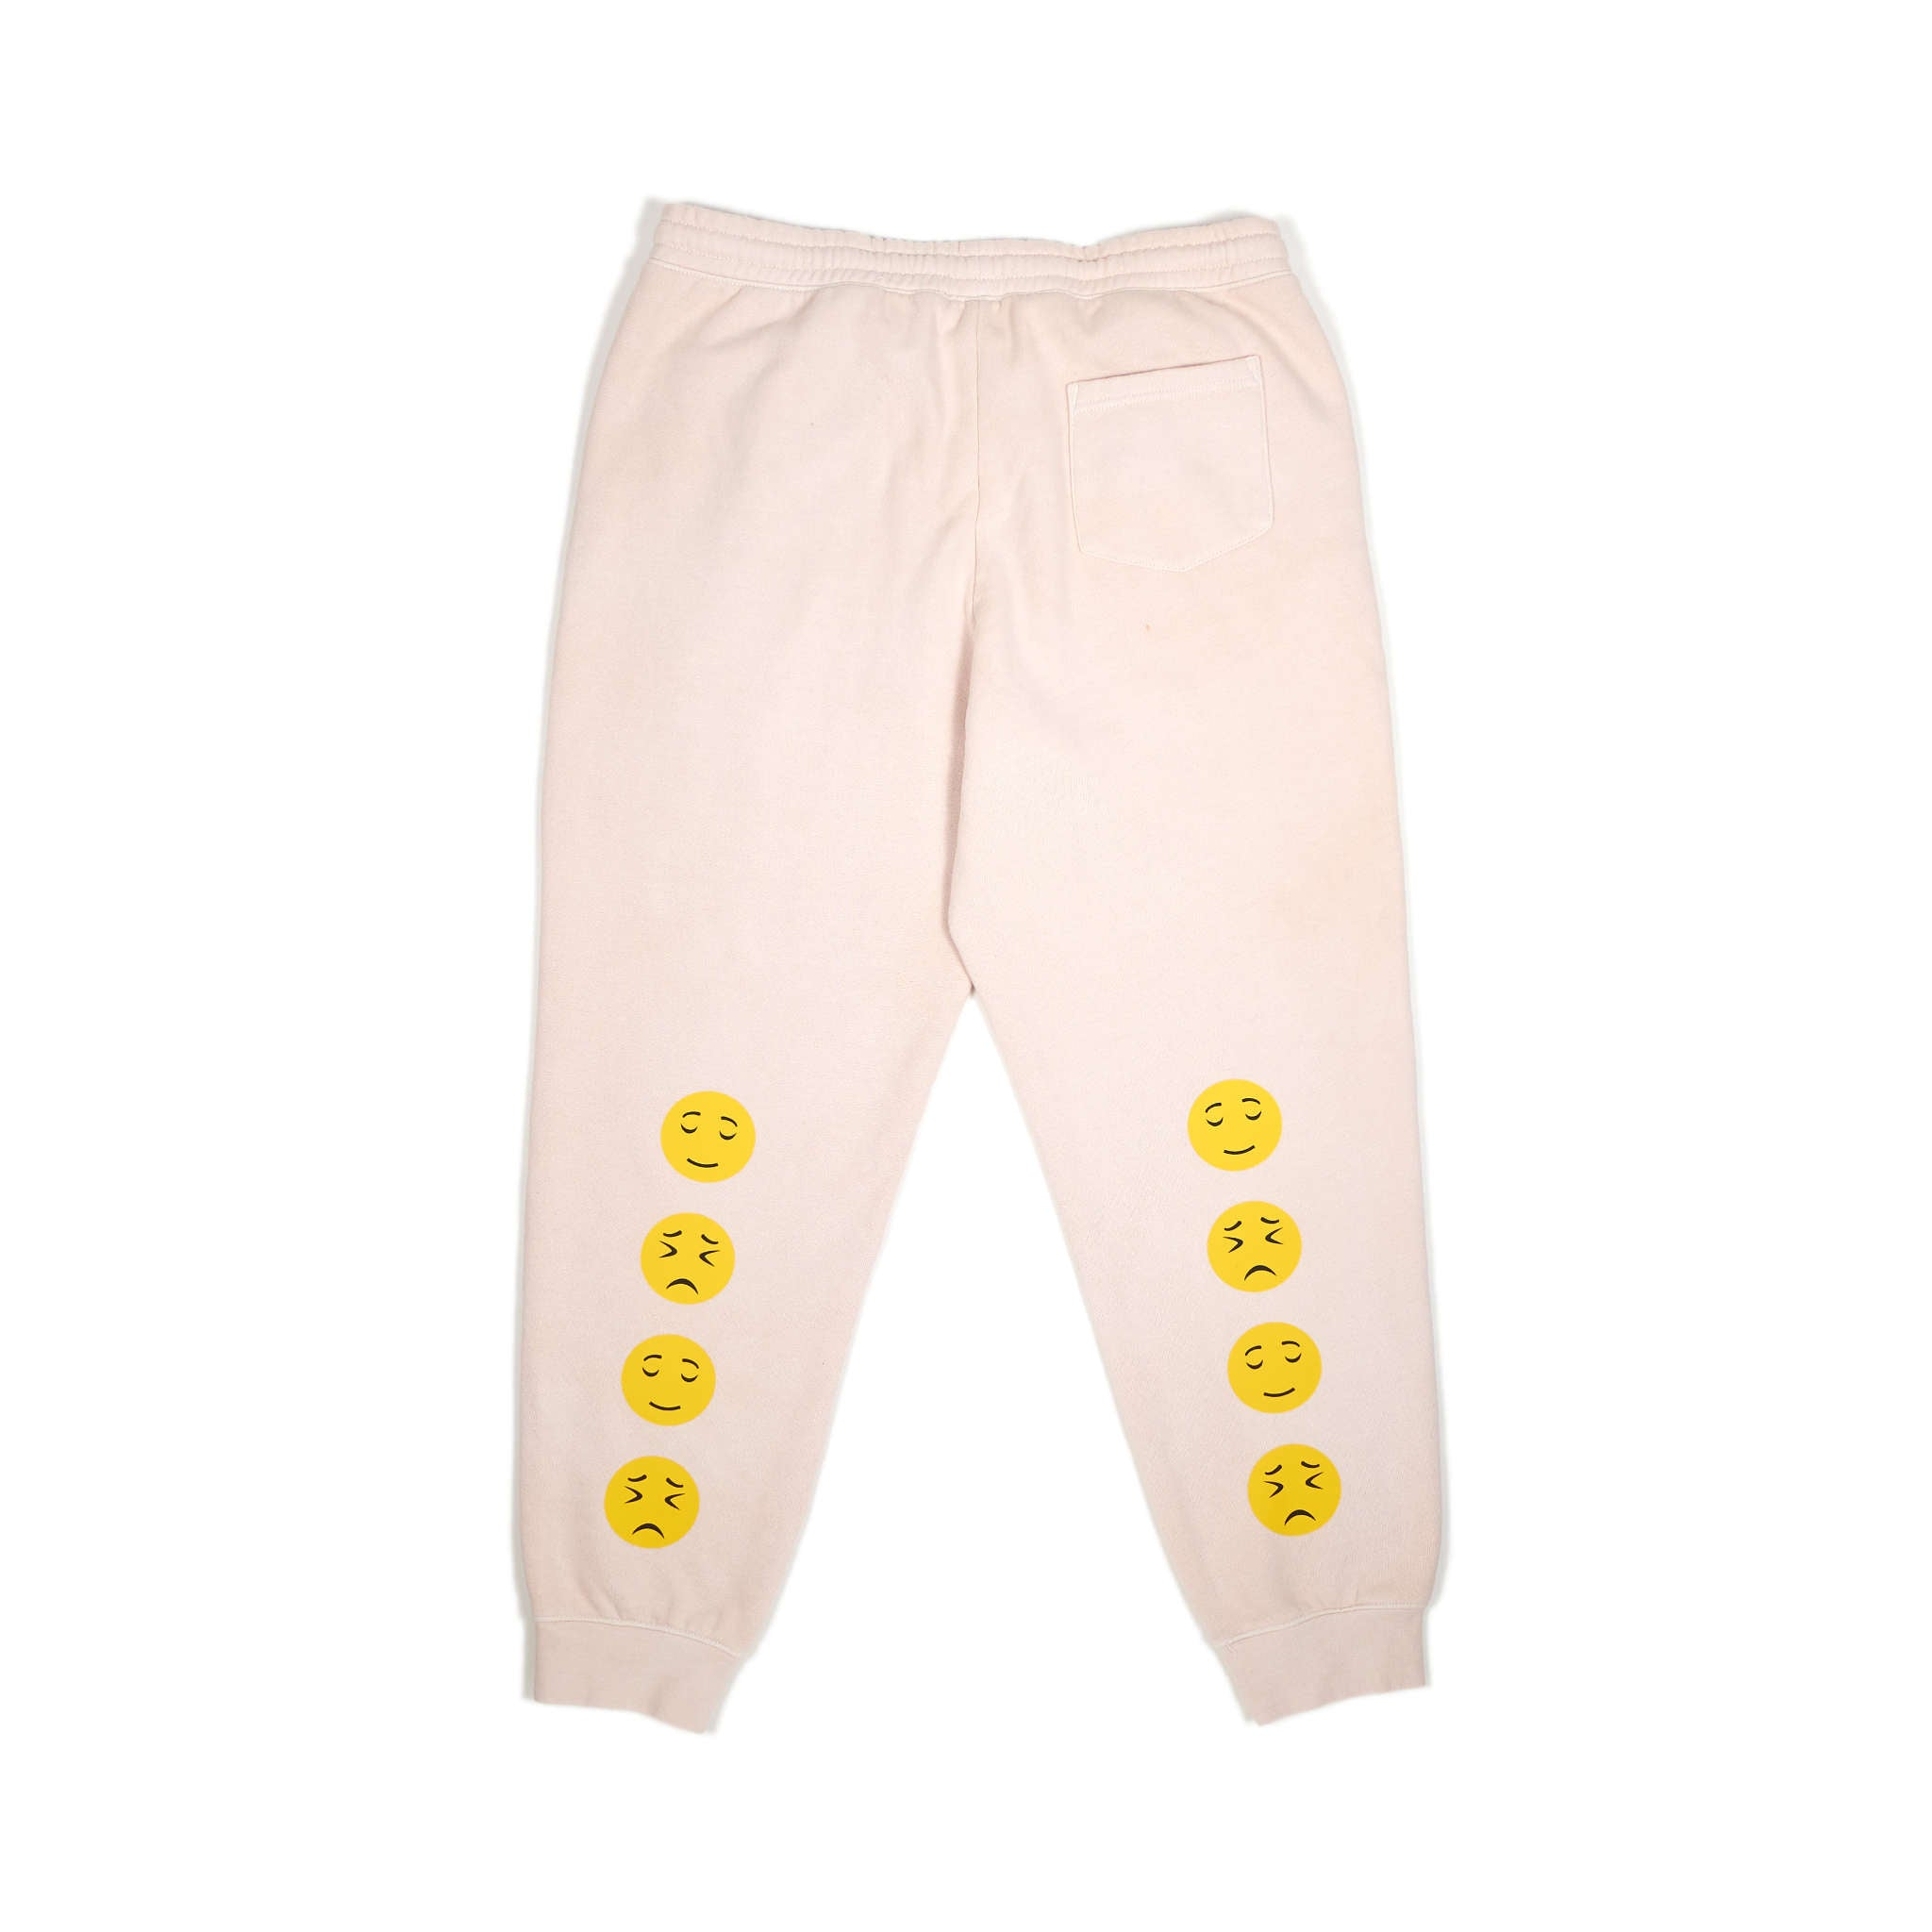 Cogs Shop | Troglodyte Capsule | Troglodyte Sweatpants Moonstone back